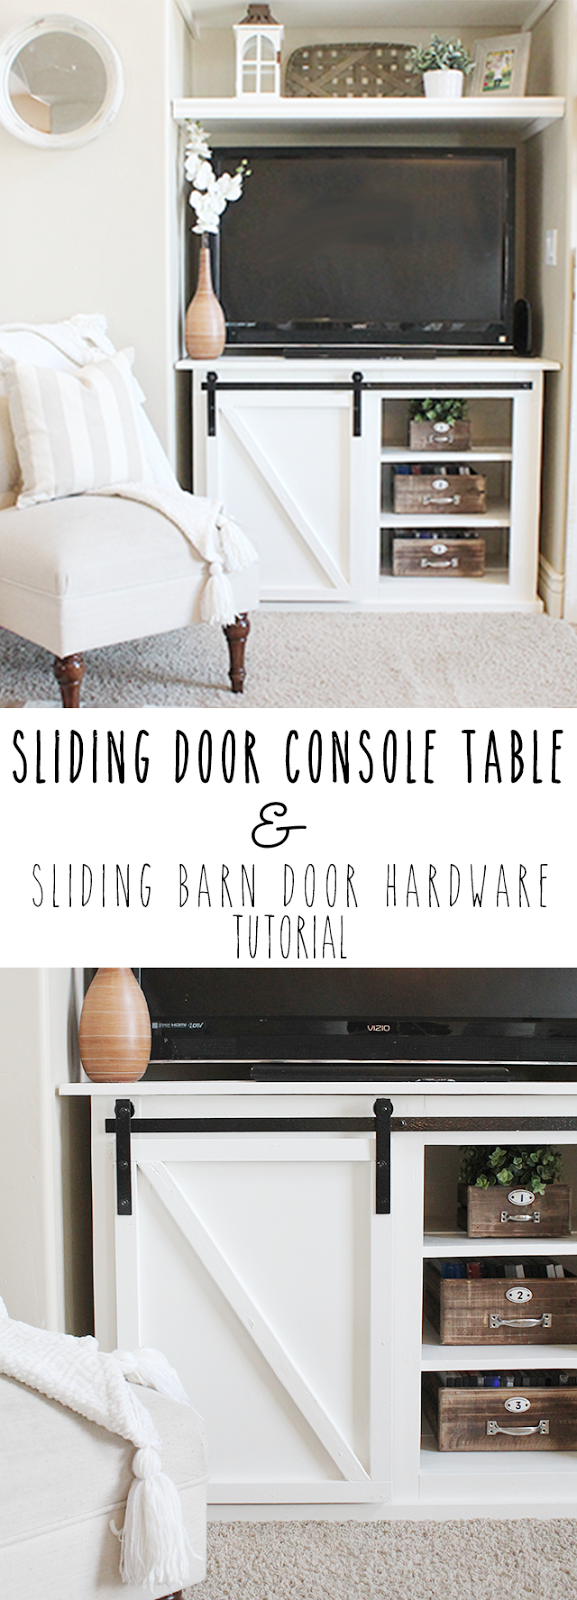 diy grandy sliding door console table or center diy barn door hardware tutorial